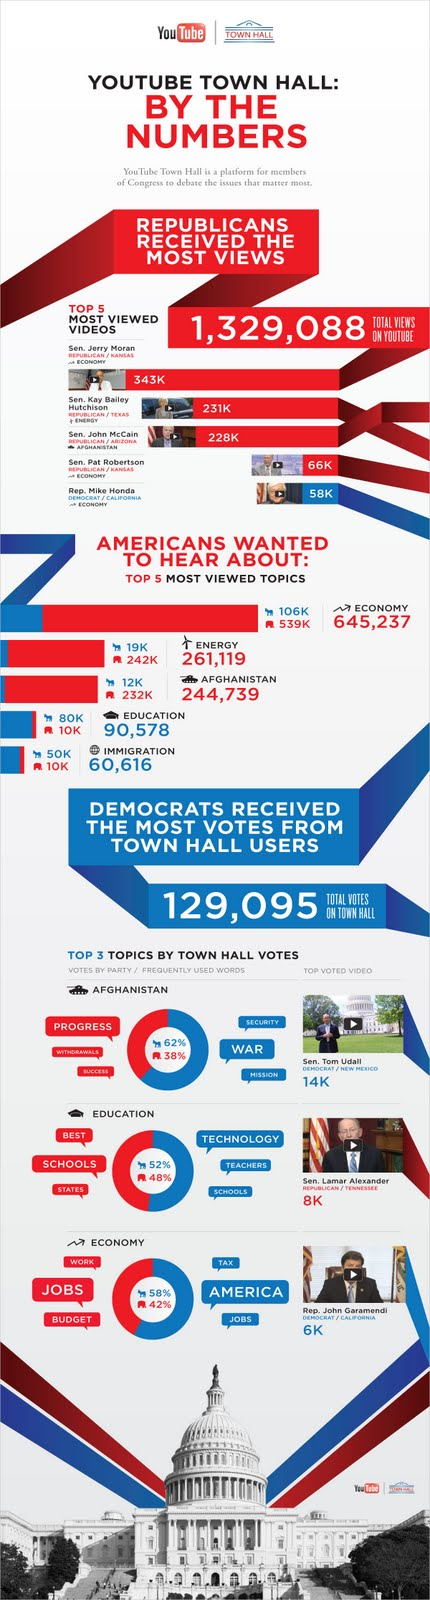 YTInfog How YouTube Town Hall is engaging with American voters [Infographic]